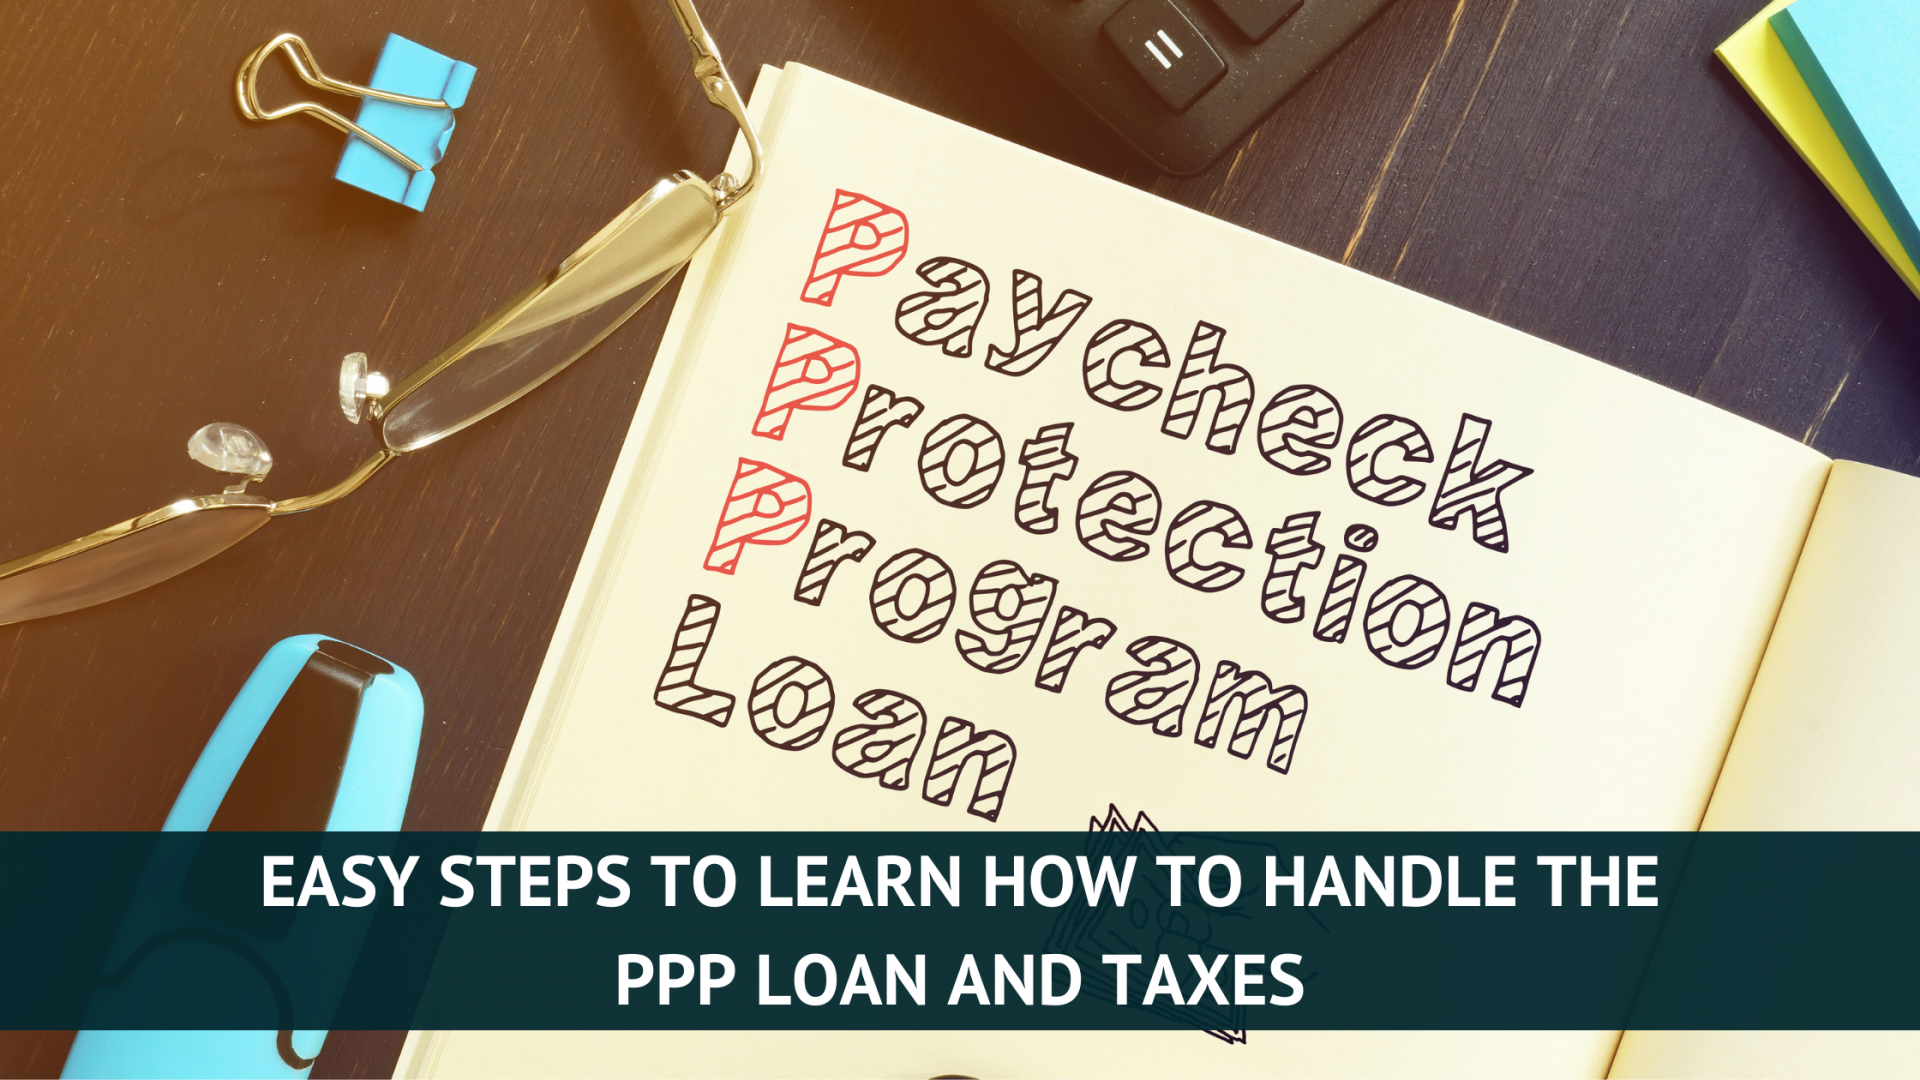 PPP loan and taxes